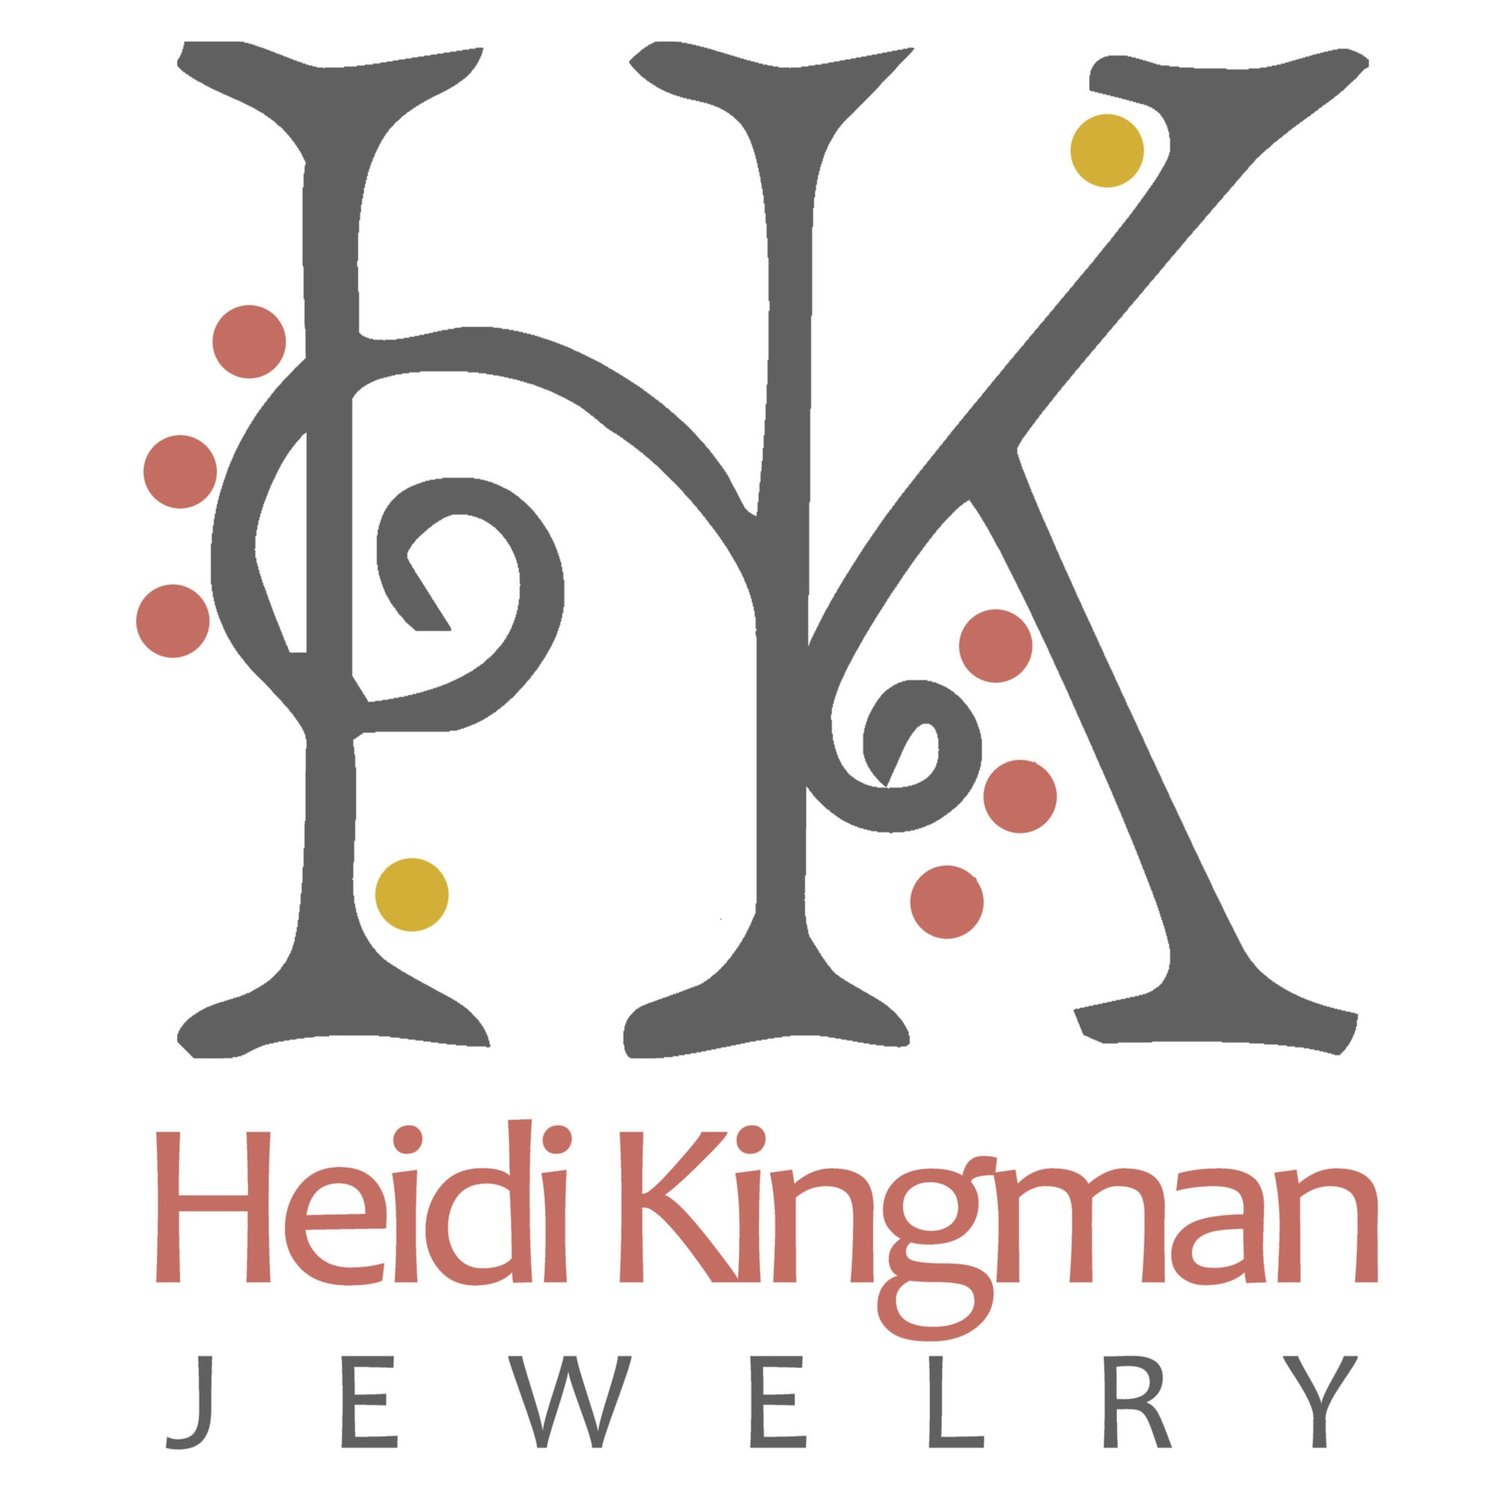 Heidi Kingman Jewelry